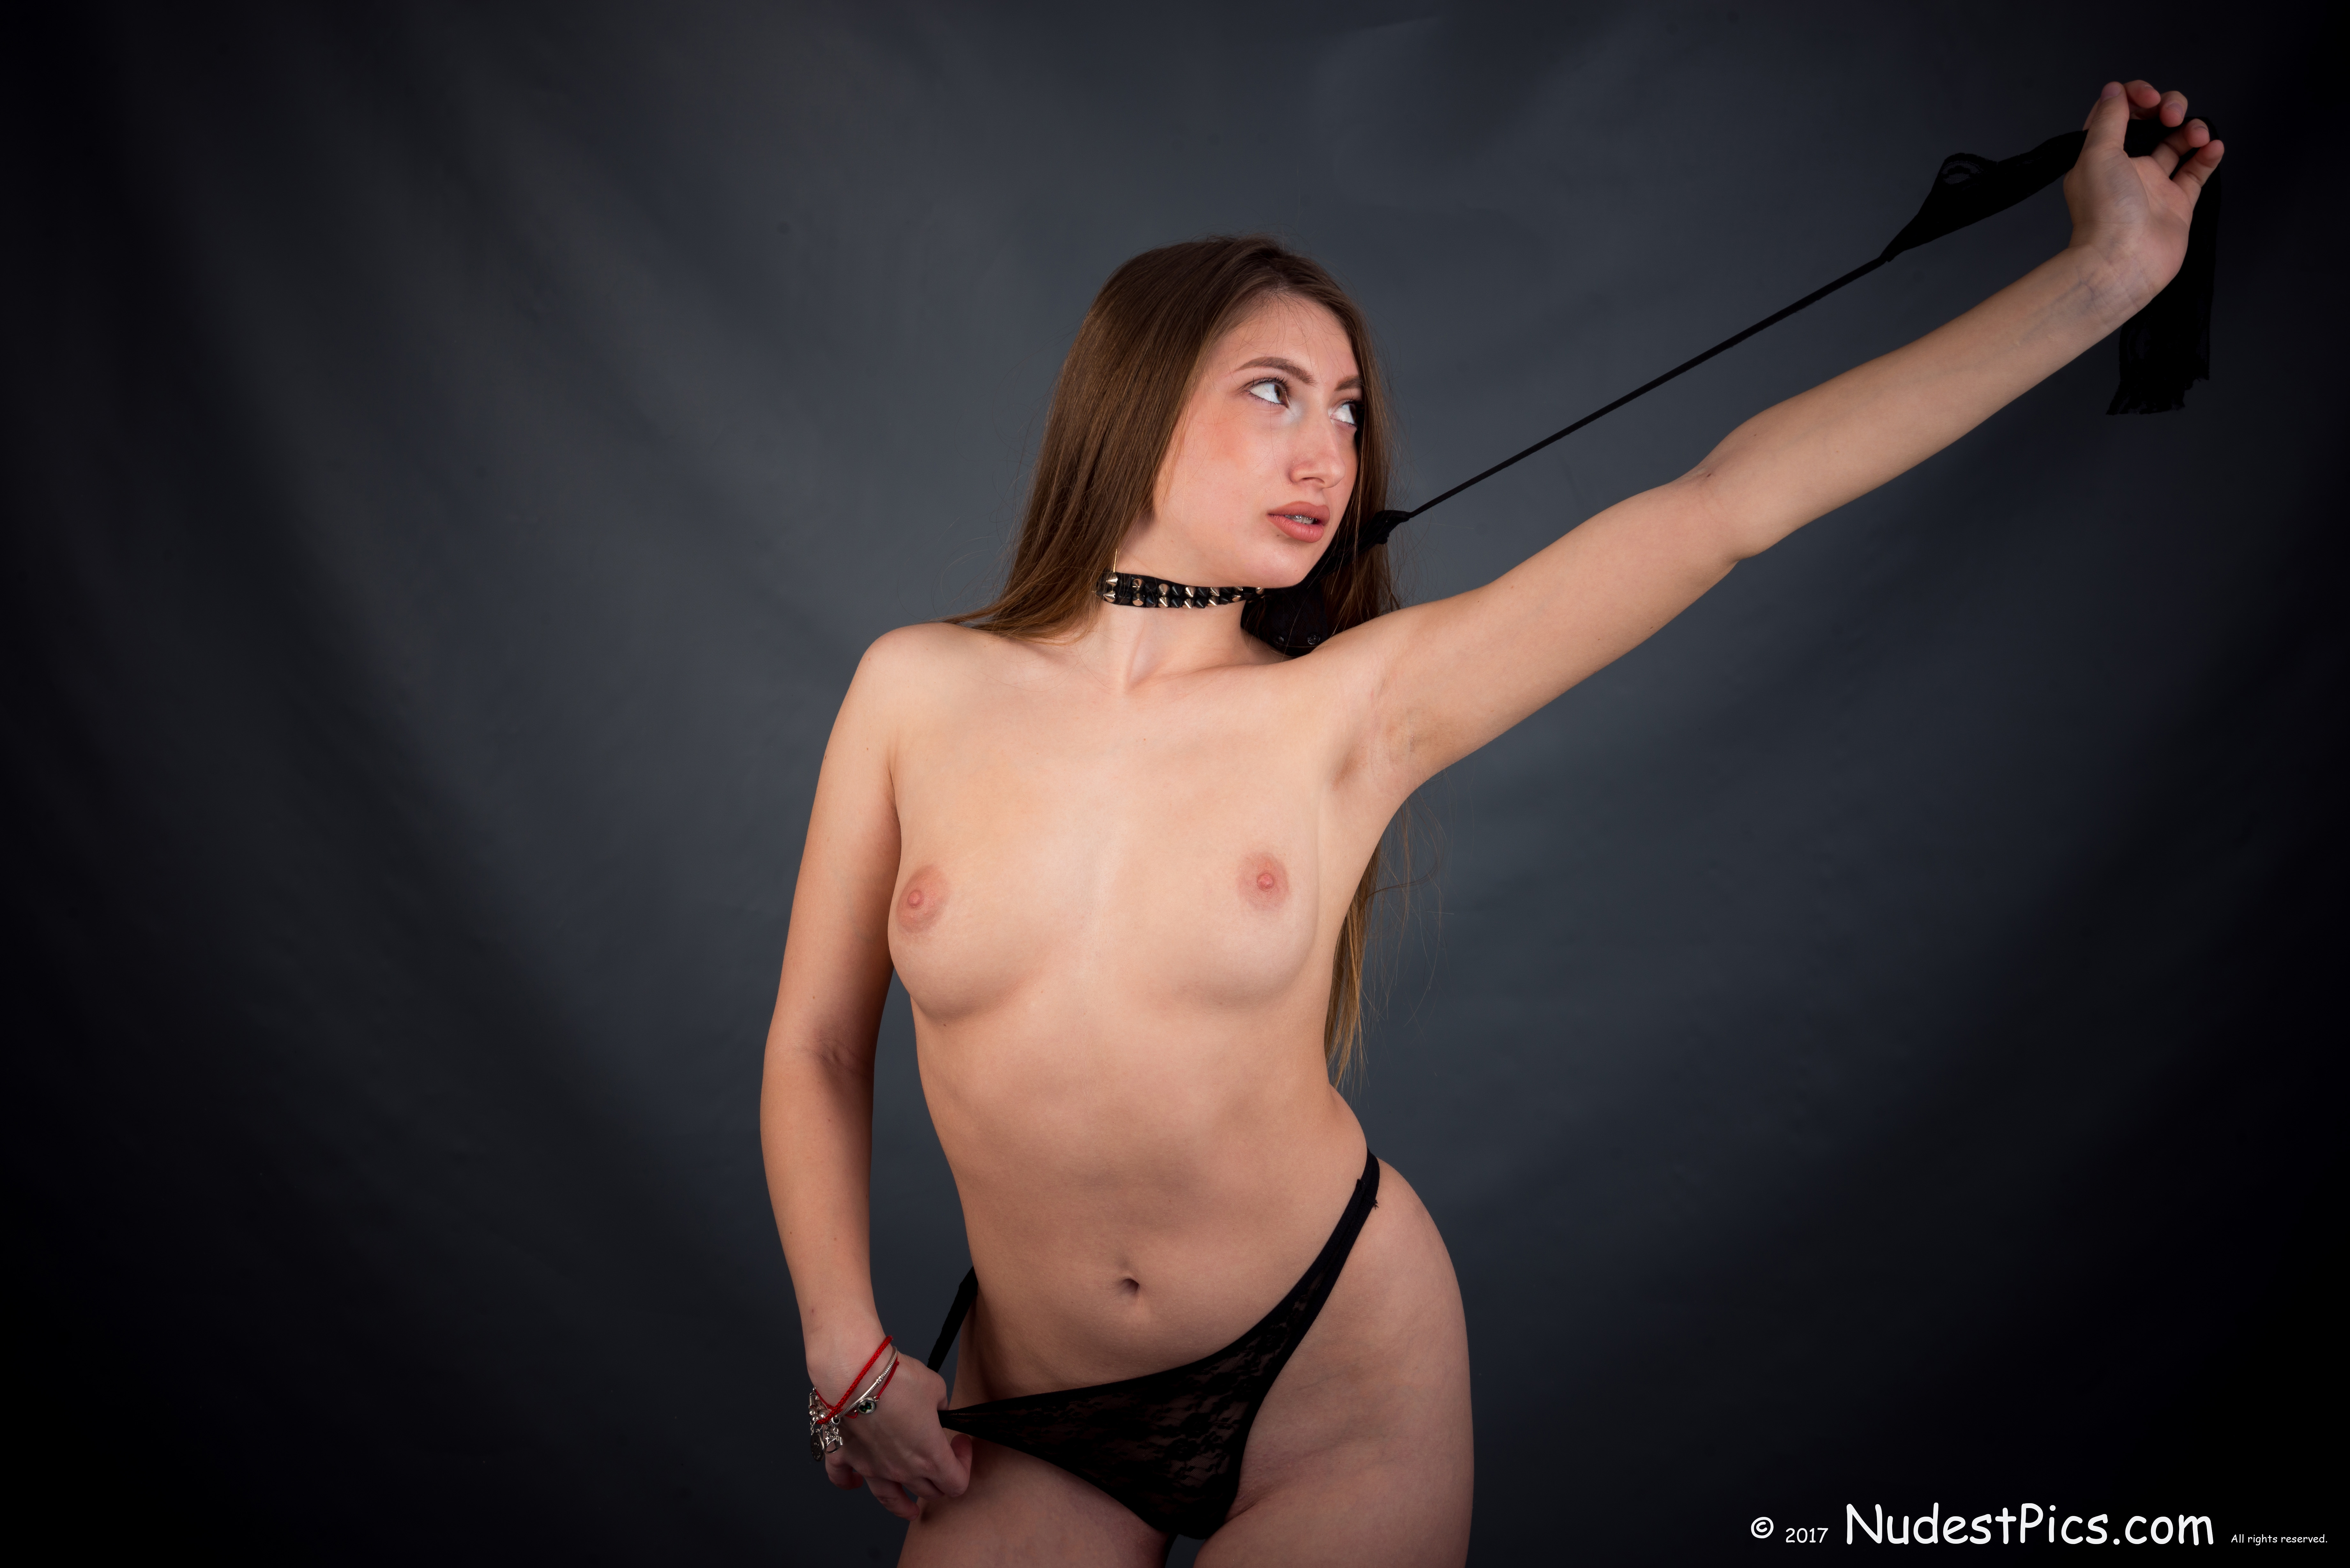 Topless White Gal Pet Pulling Leash HD